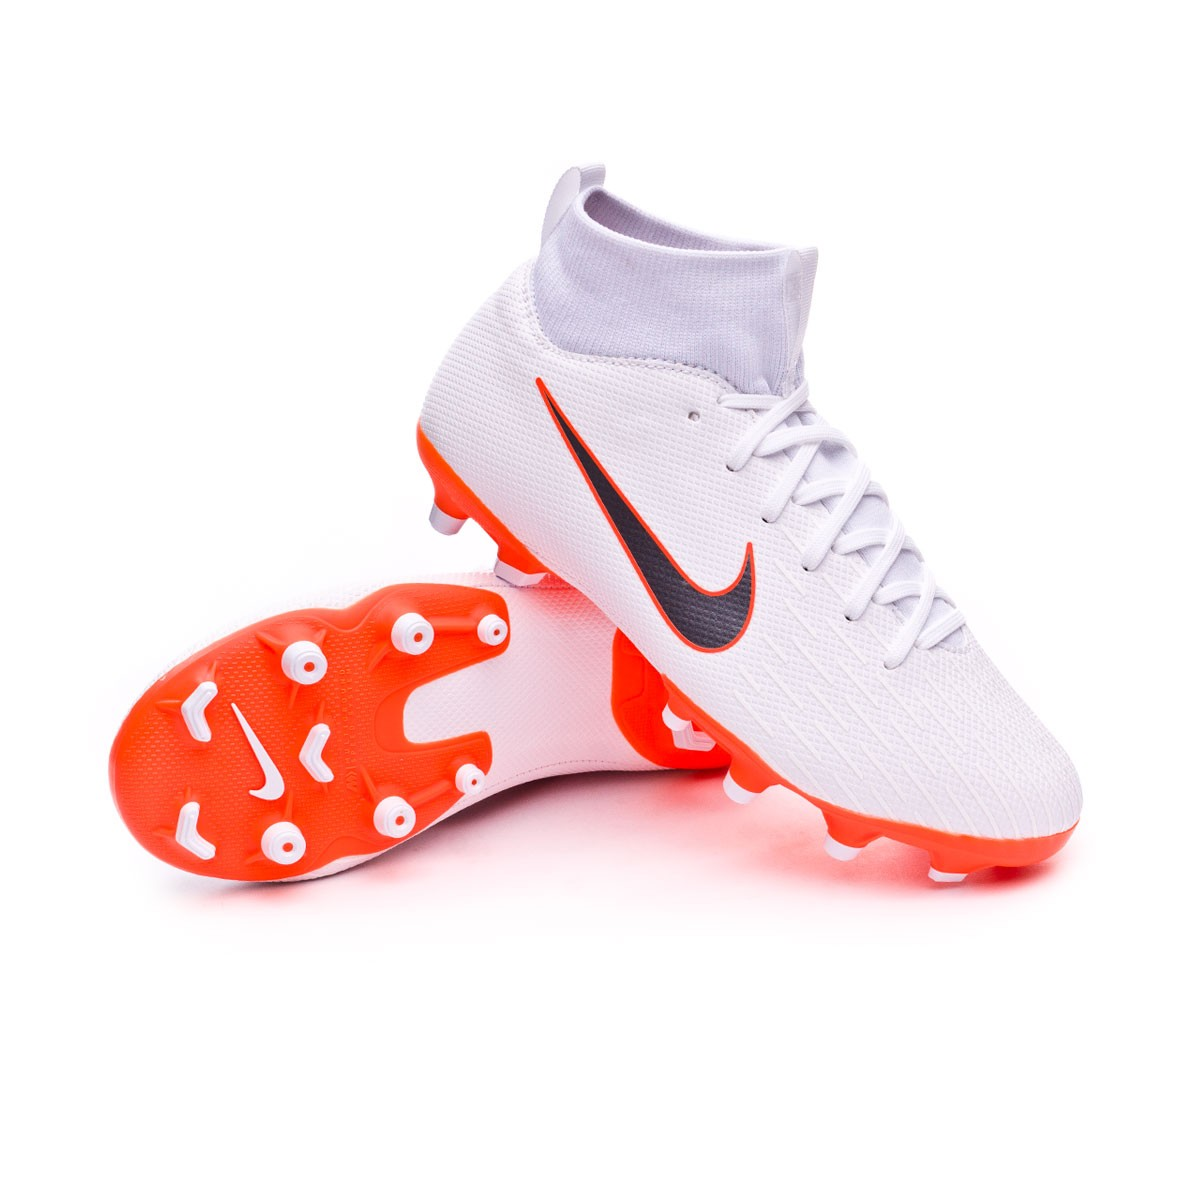 Mercurial Chaussure Nike Academy Vi De Superfly Mg Gs Football qggr1nt